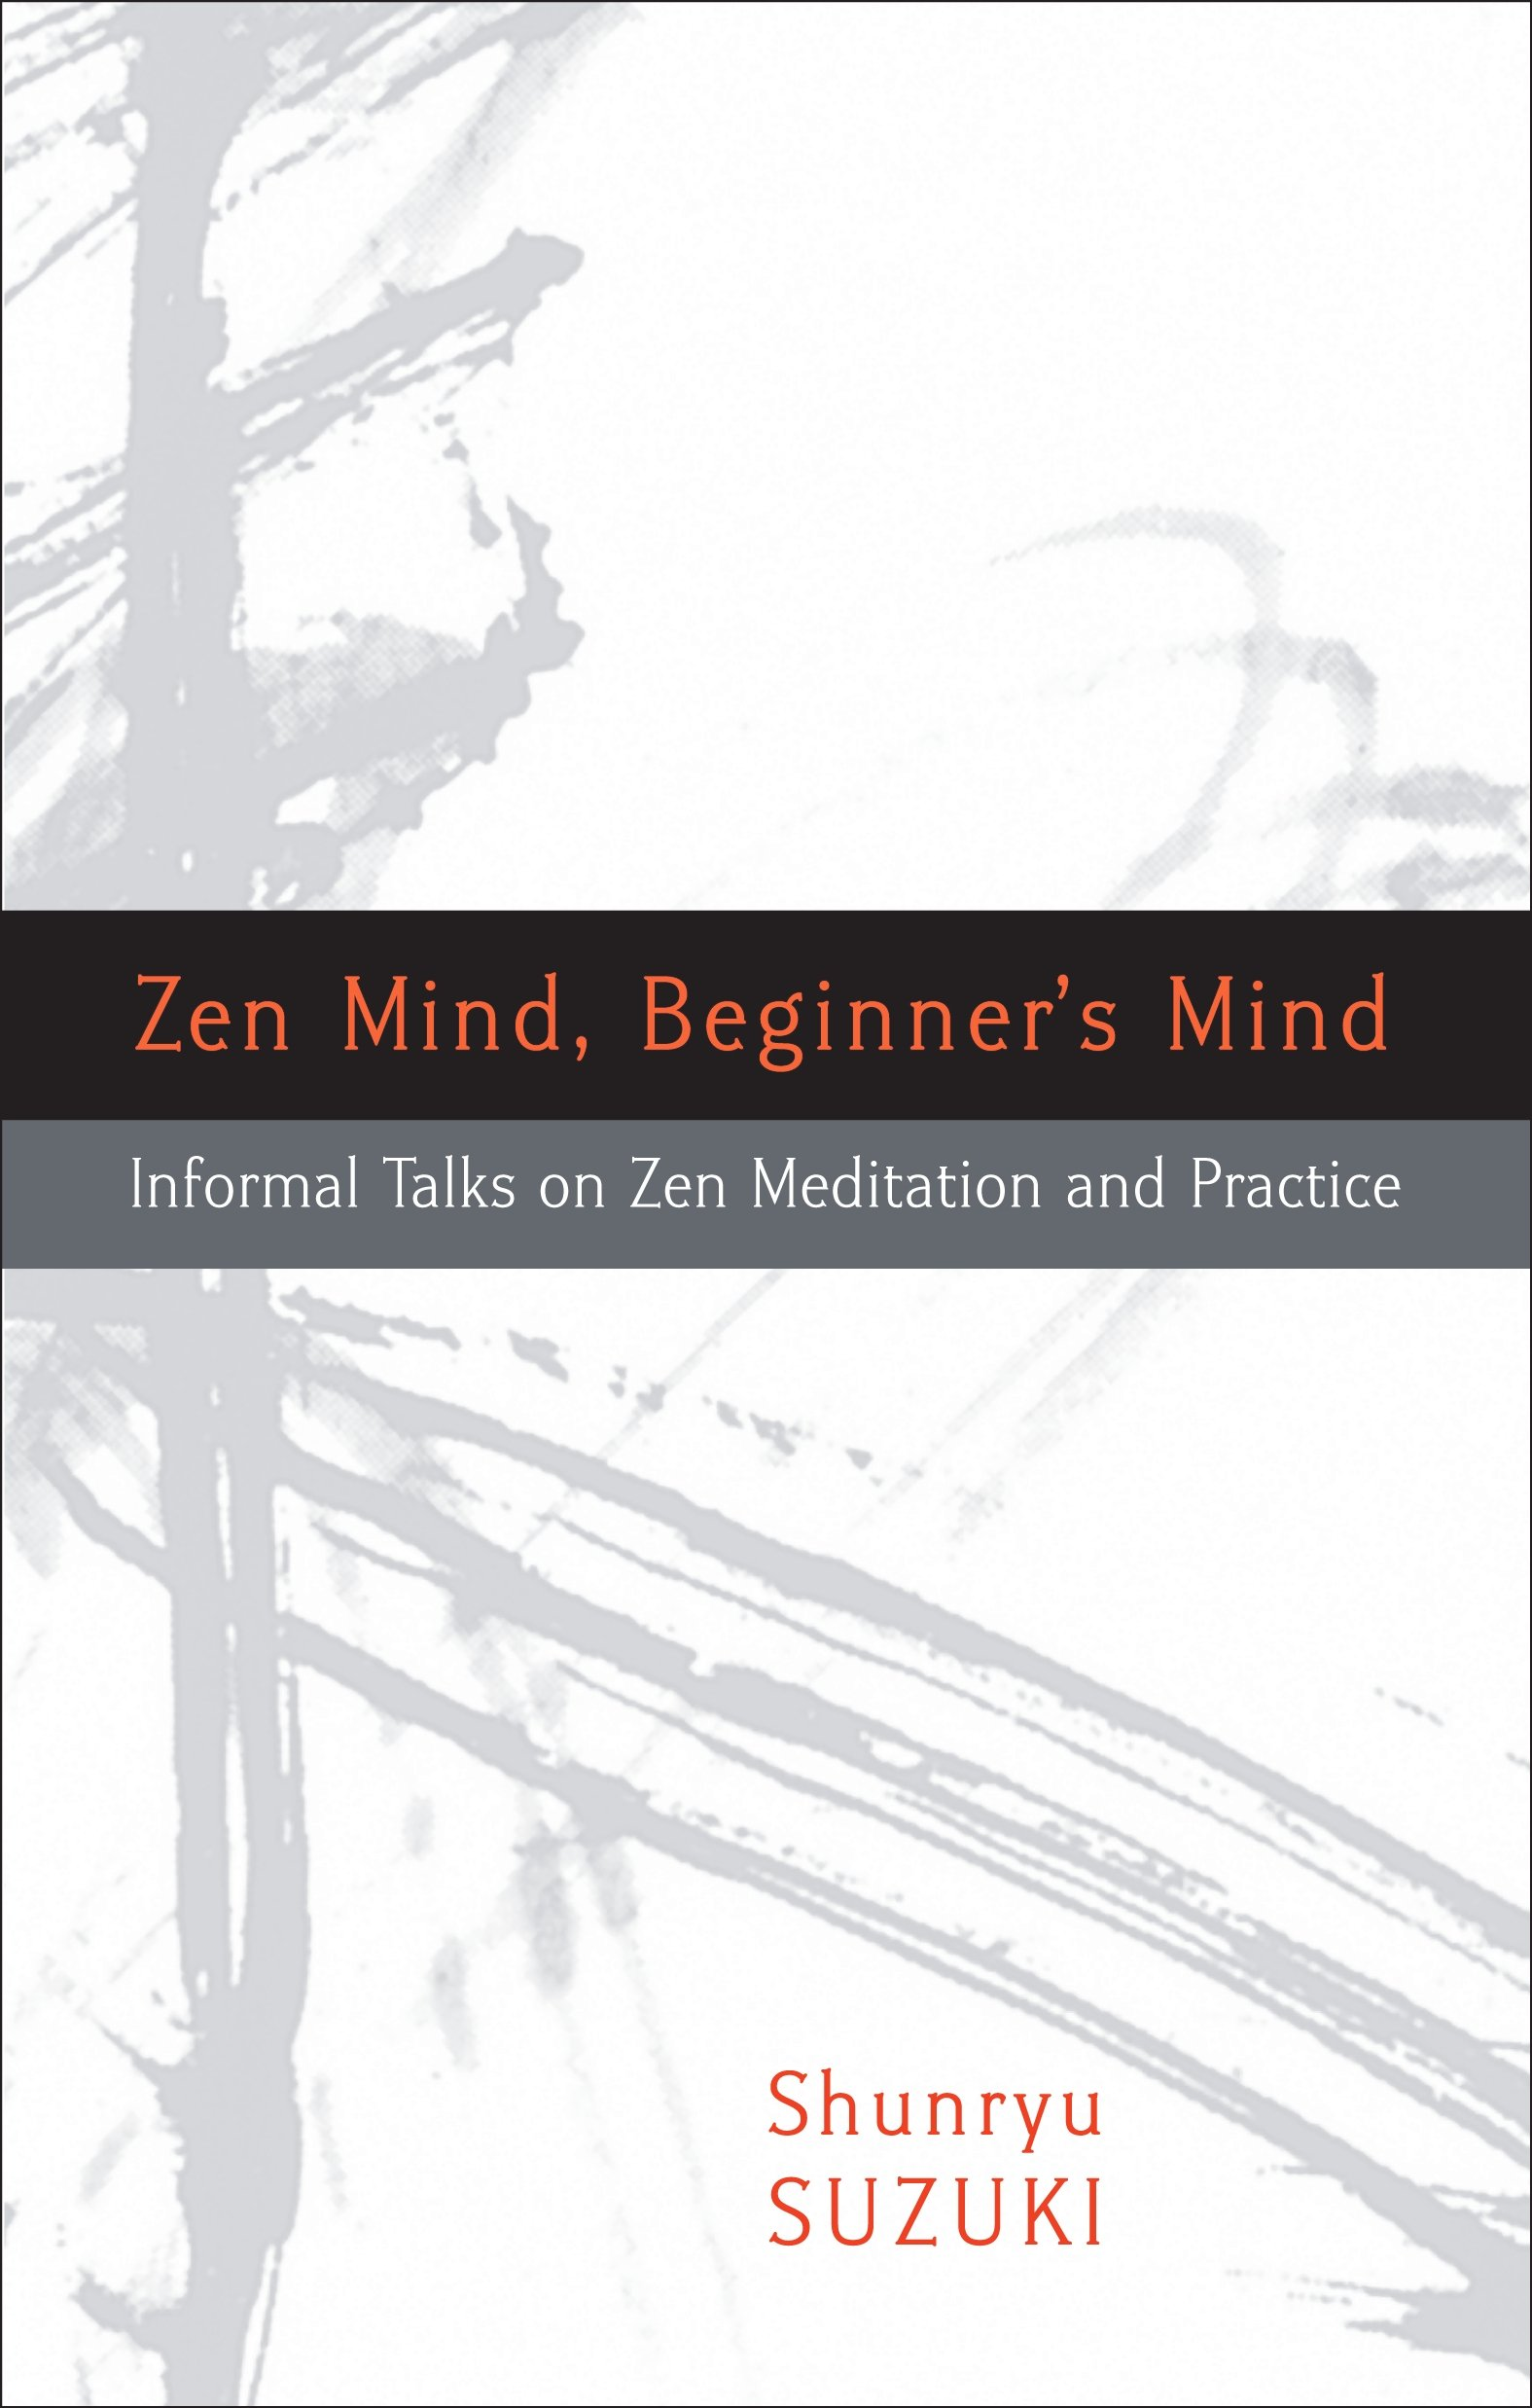 Suzuki Zen Beginner Mind cover art